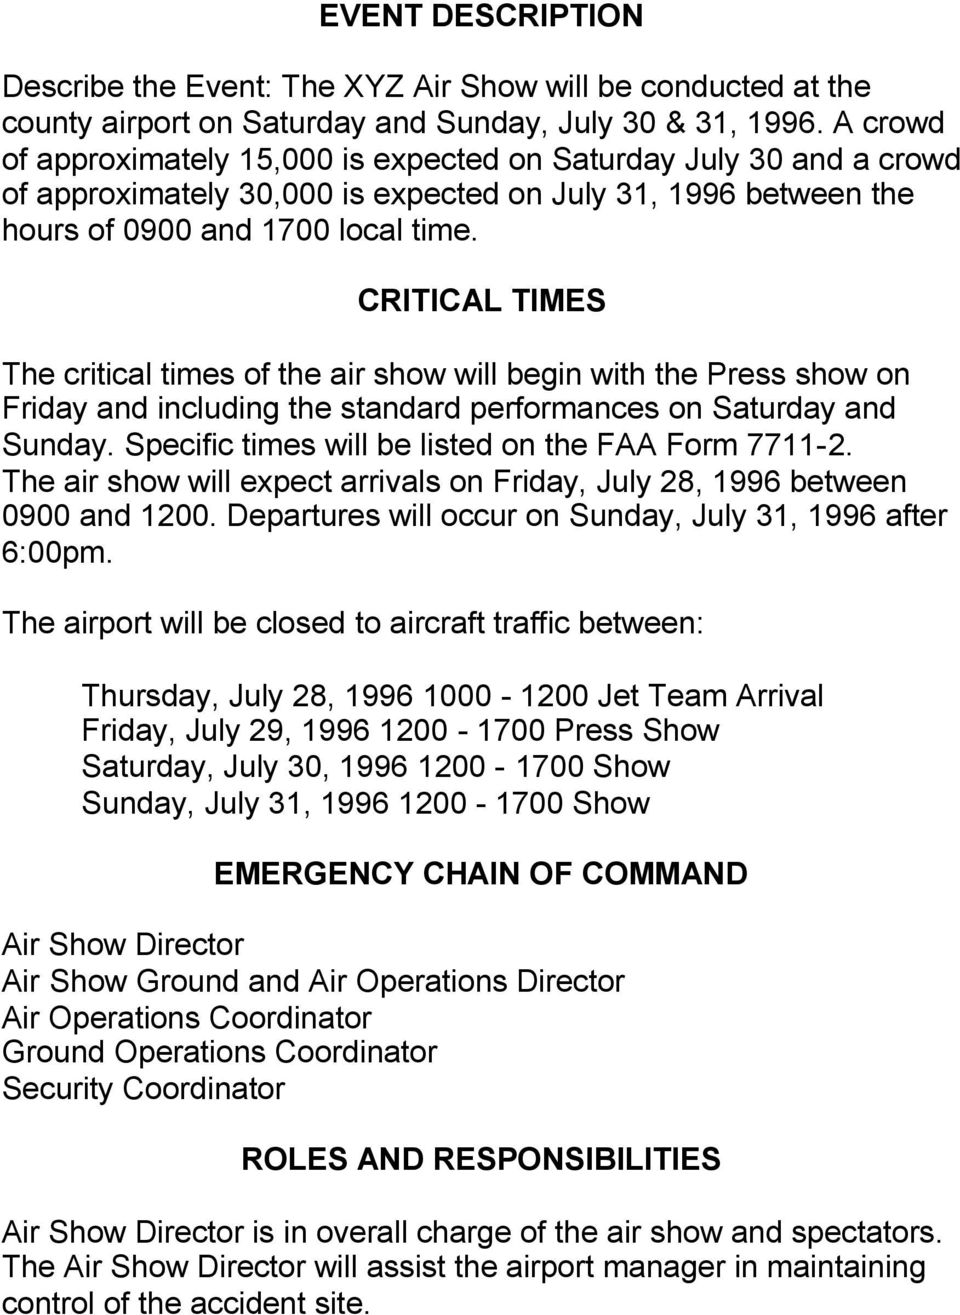 CRITICAL TIMES The critical times of the air show will begin with the Press show on Friday and including the standard performances on Saturday and Sunday.